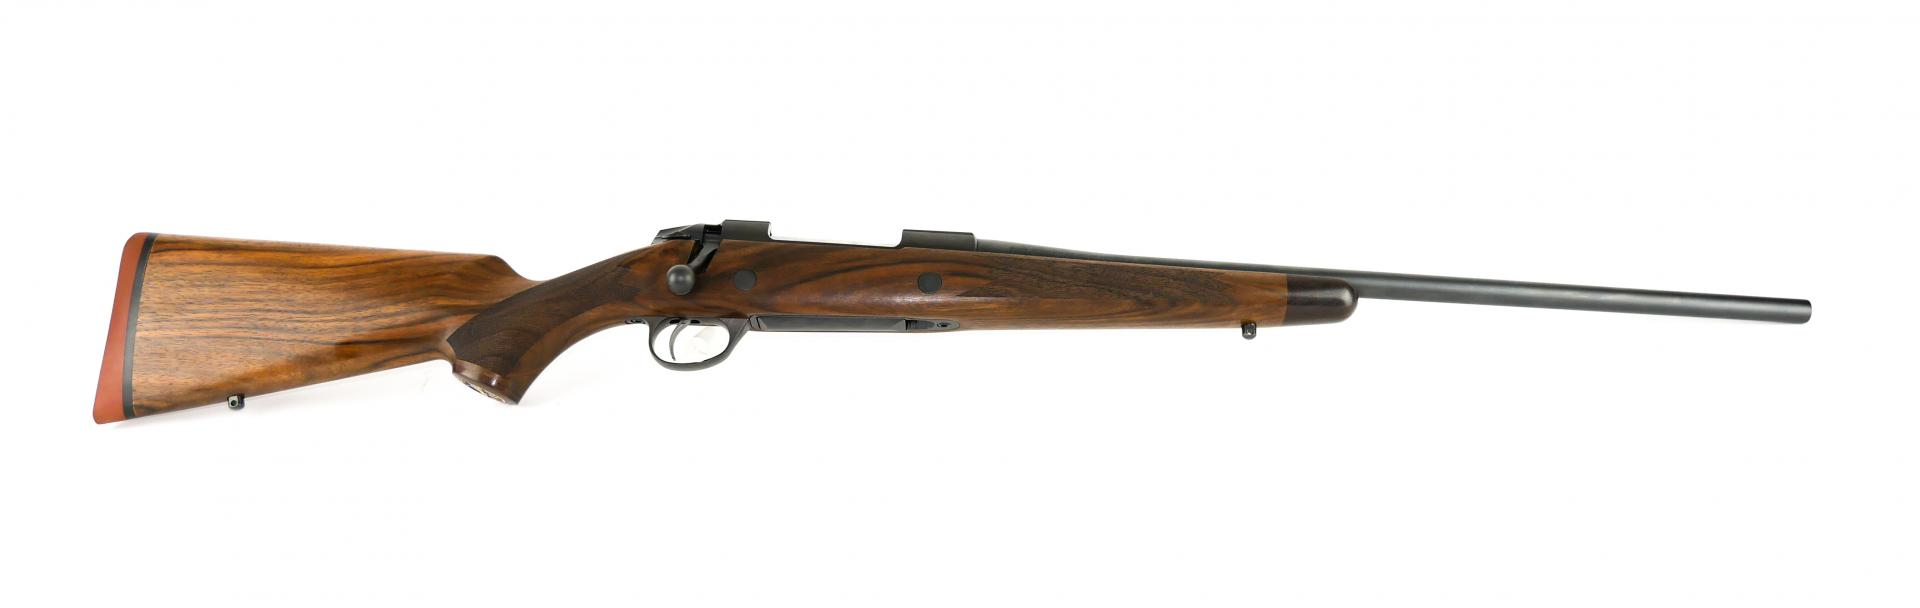 "85 Classic | 30-06, Wood Stock, Blued Action, 22 7/16"" Barrel, 1/11 Twist"